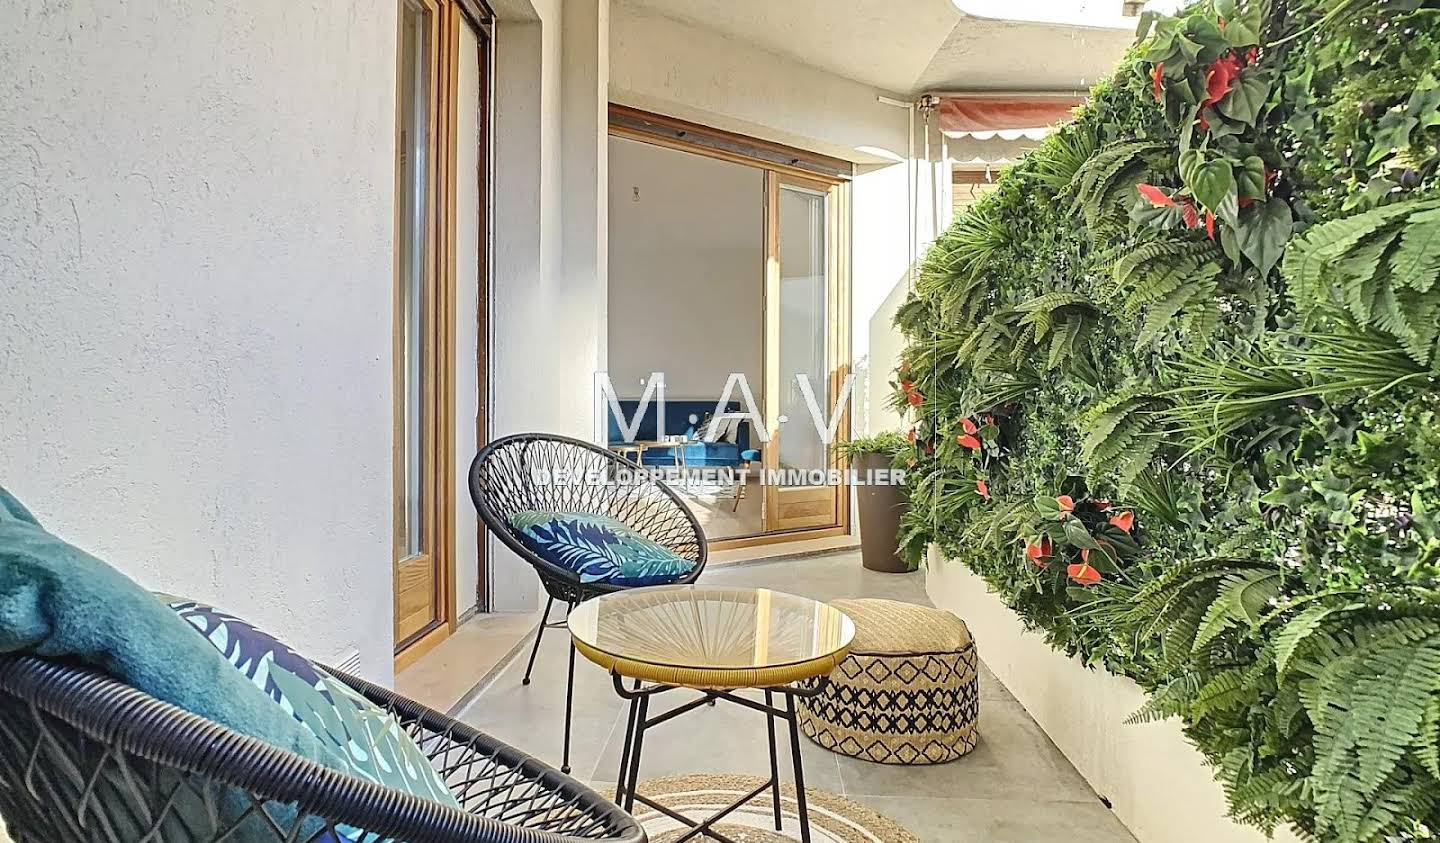 Apartment with terrace Nice